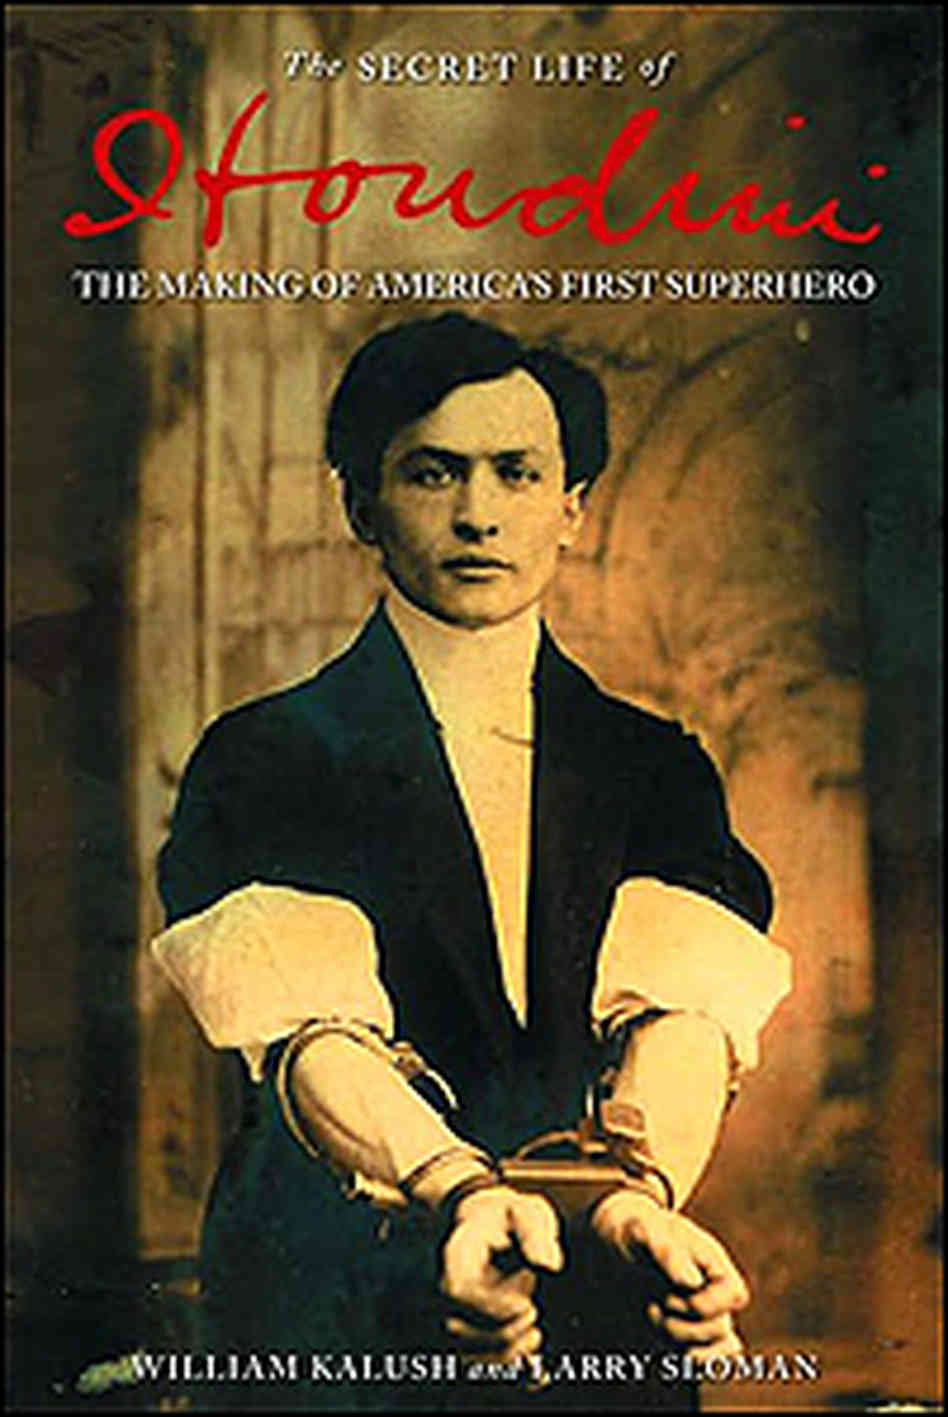 The Secret Life of Houdini The Making of America's First Superhero-28MAIO2014